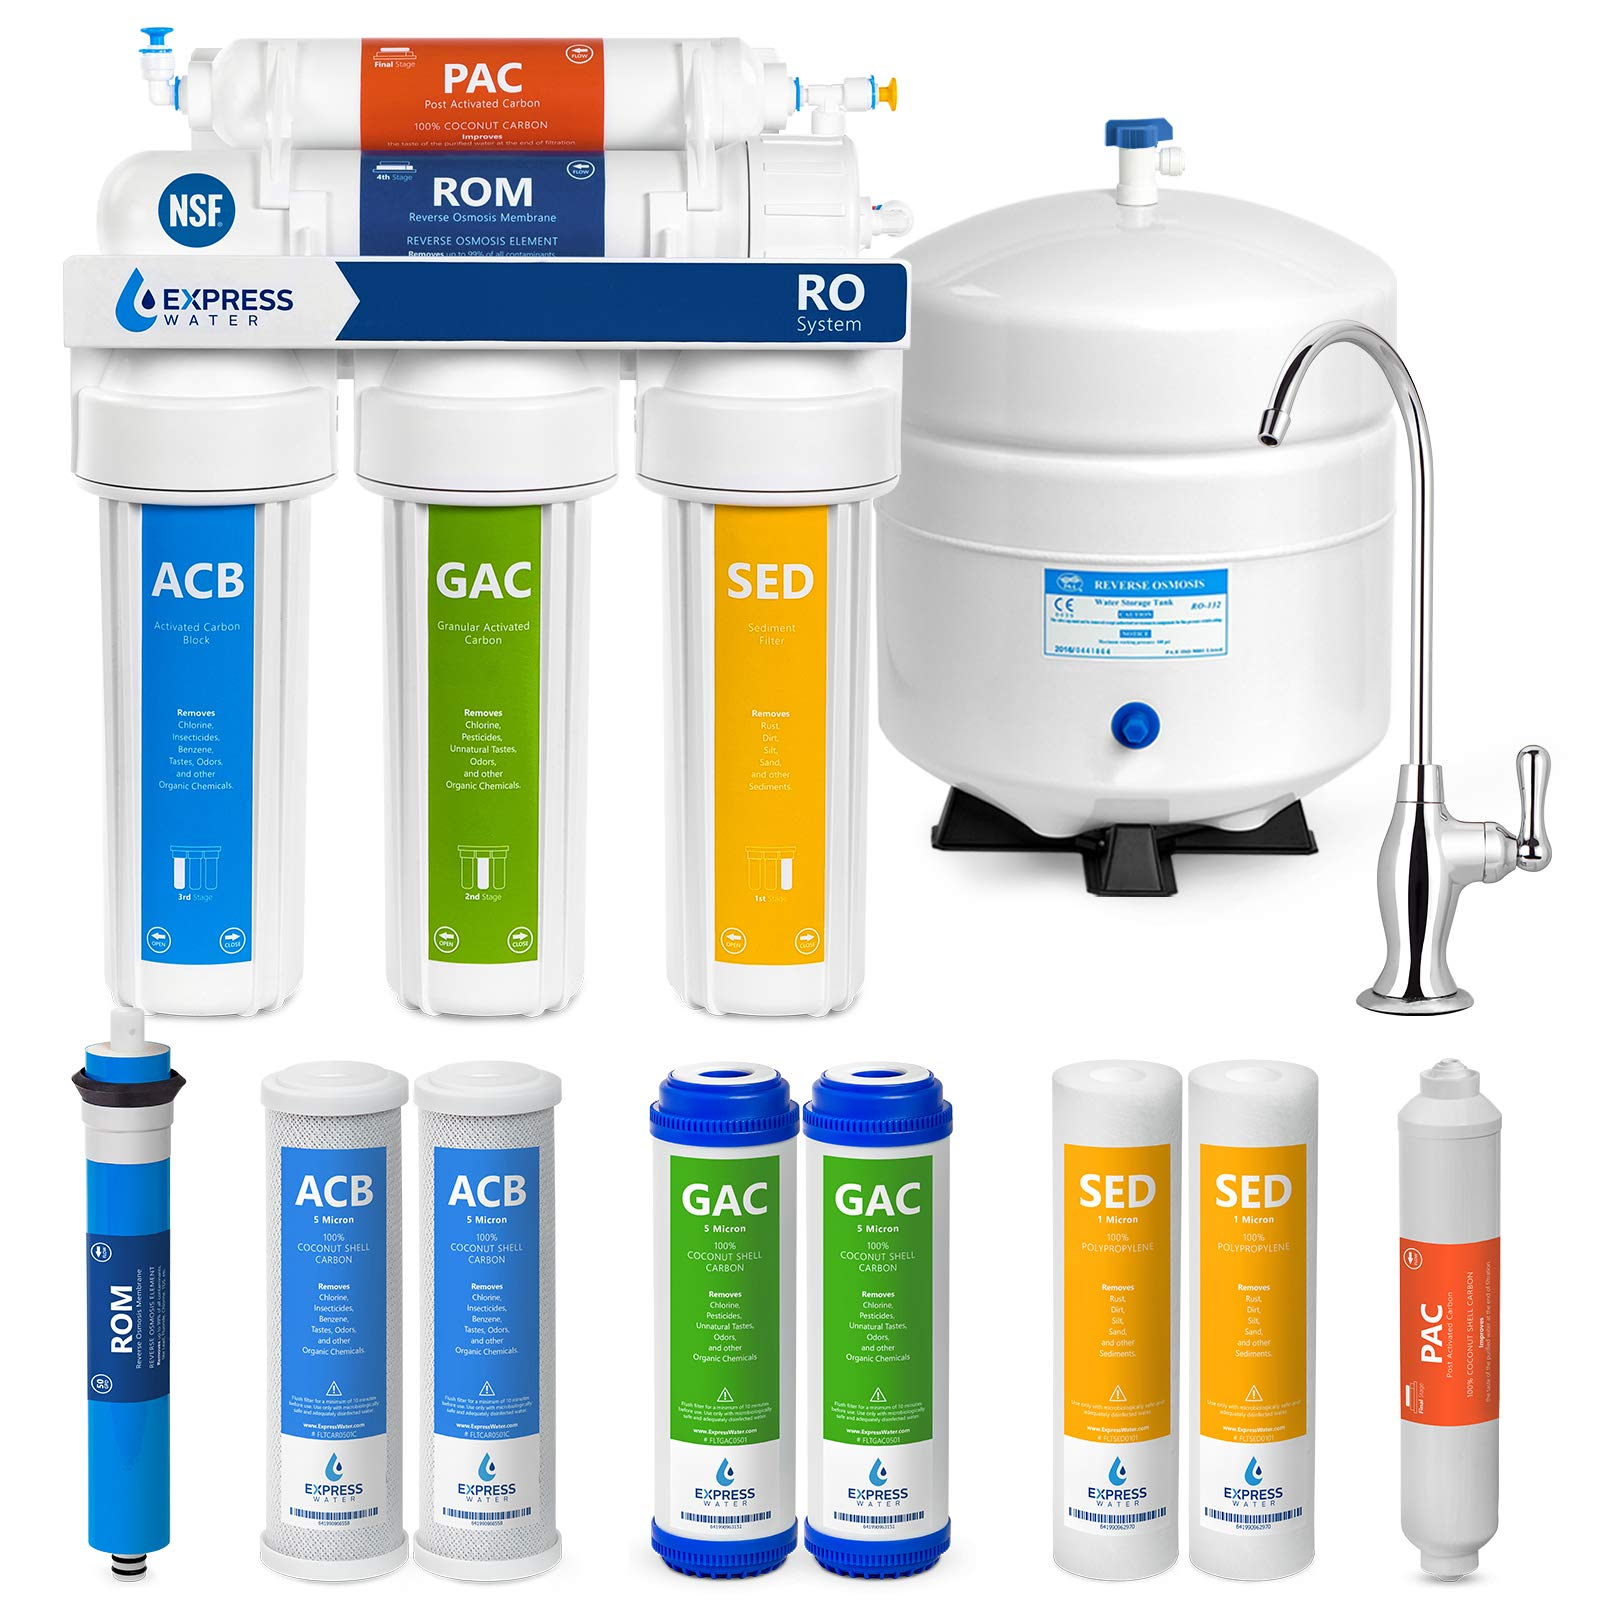 Express Water Reverse Osmosis Water Filtration System - NSF Certified 5 Stage RO Water Purifier with Faucet and Tank - Under Sink Water Filter - plus 4 Replacement Filters - 50 GPD by Express Water